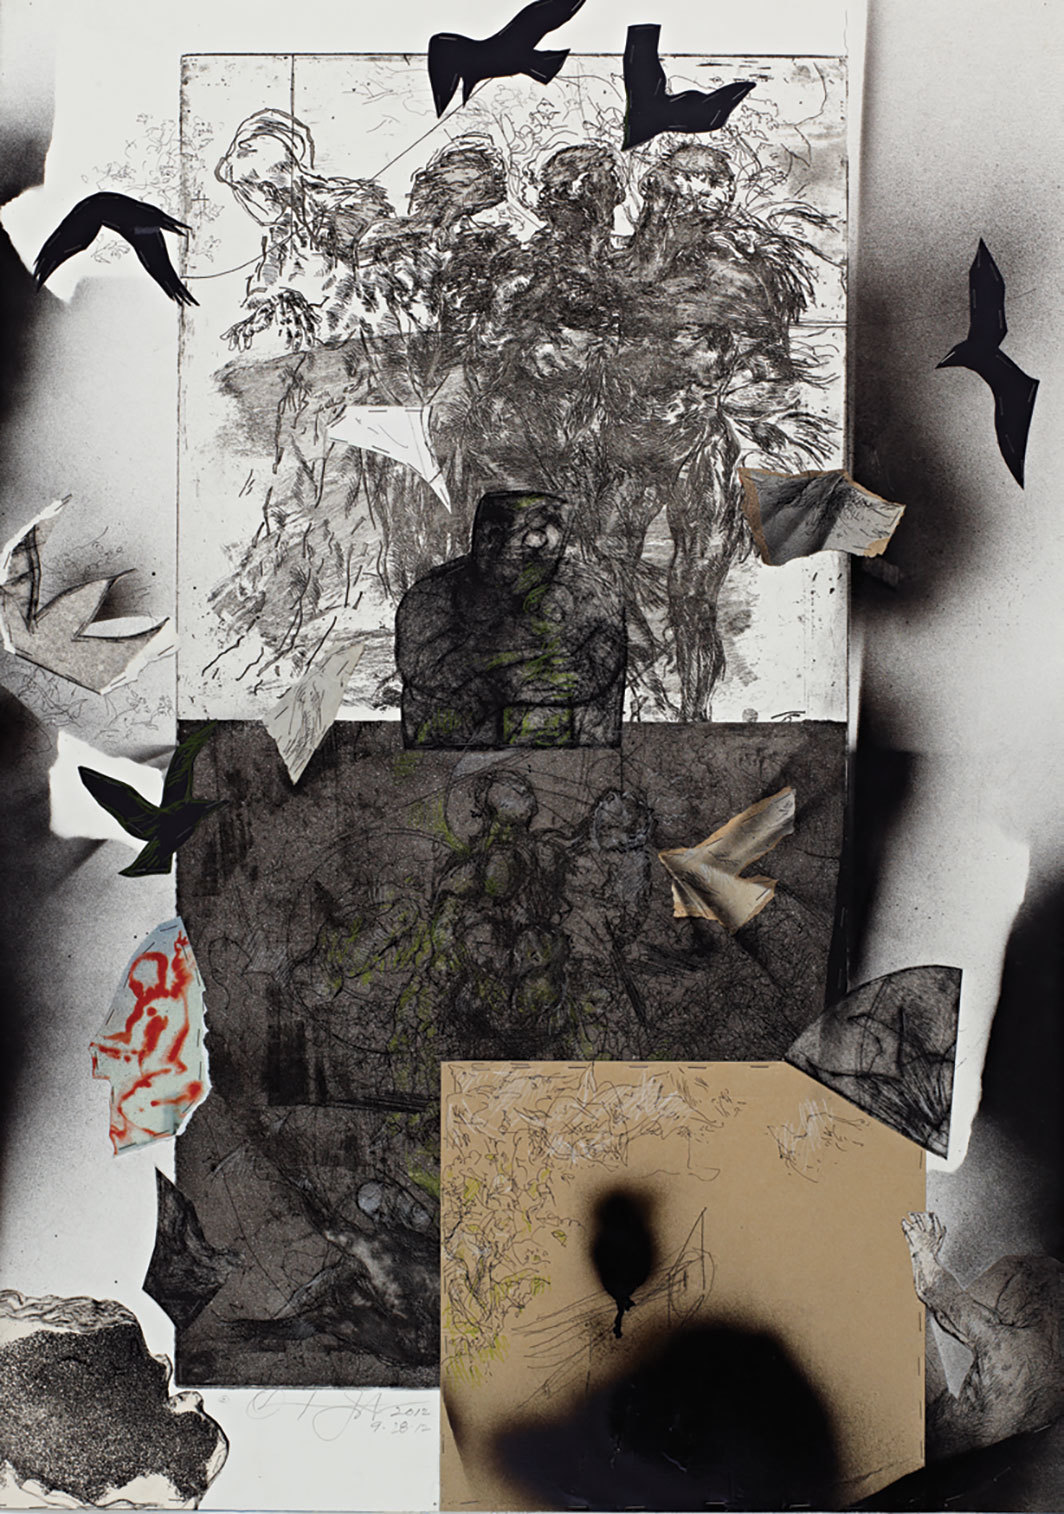 "Oliver Lee Jackson, Composite, 2012, intaglio print and mixed media on paper, 40 1⁄4 × 28 7⁄8""."